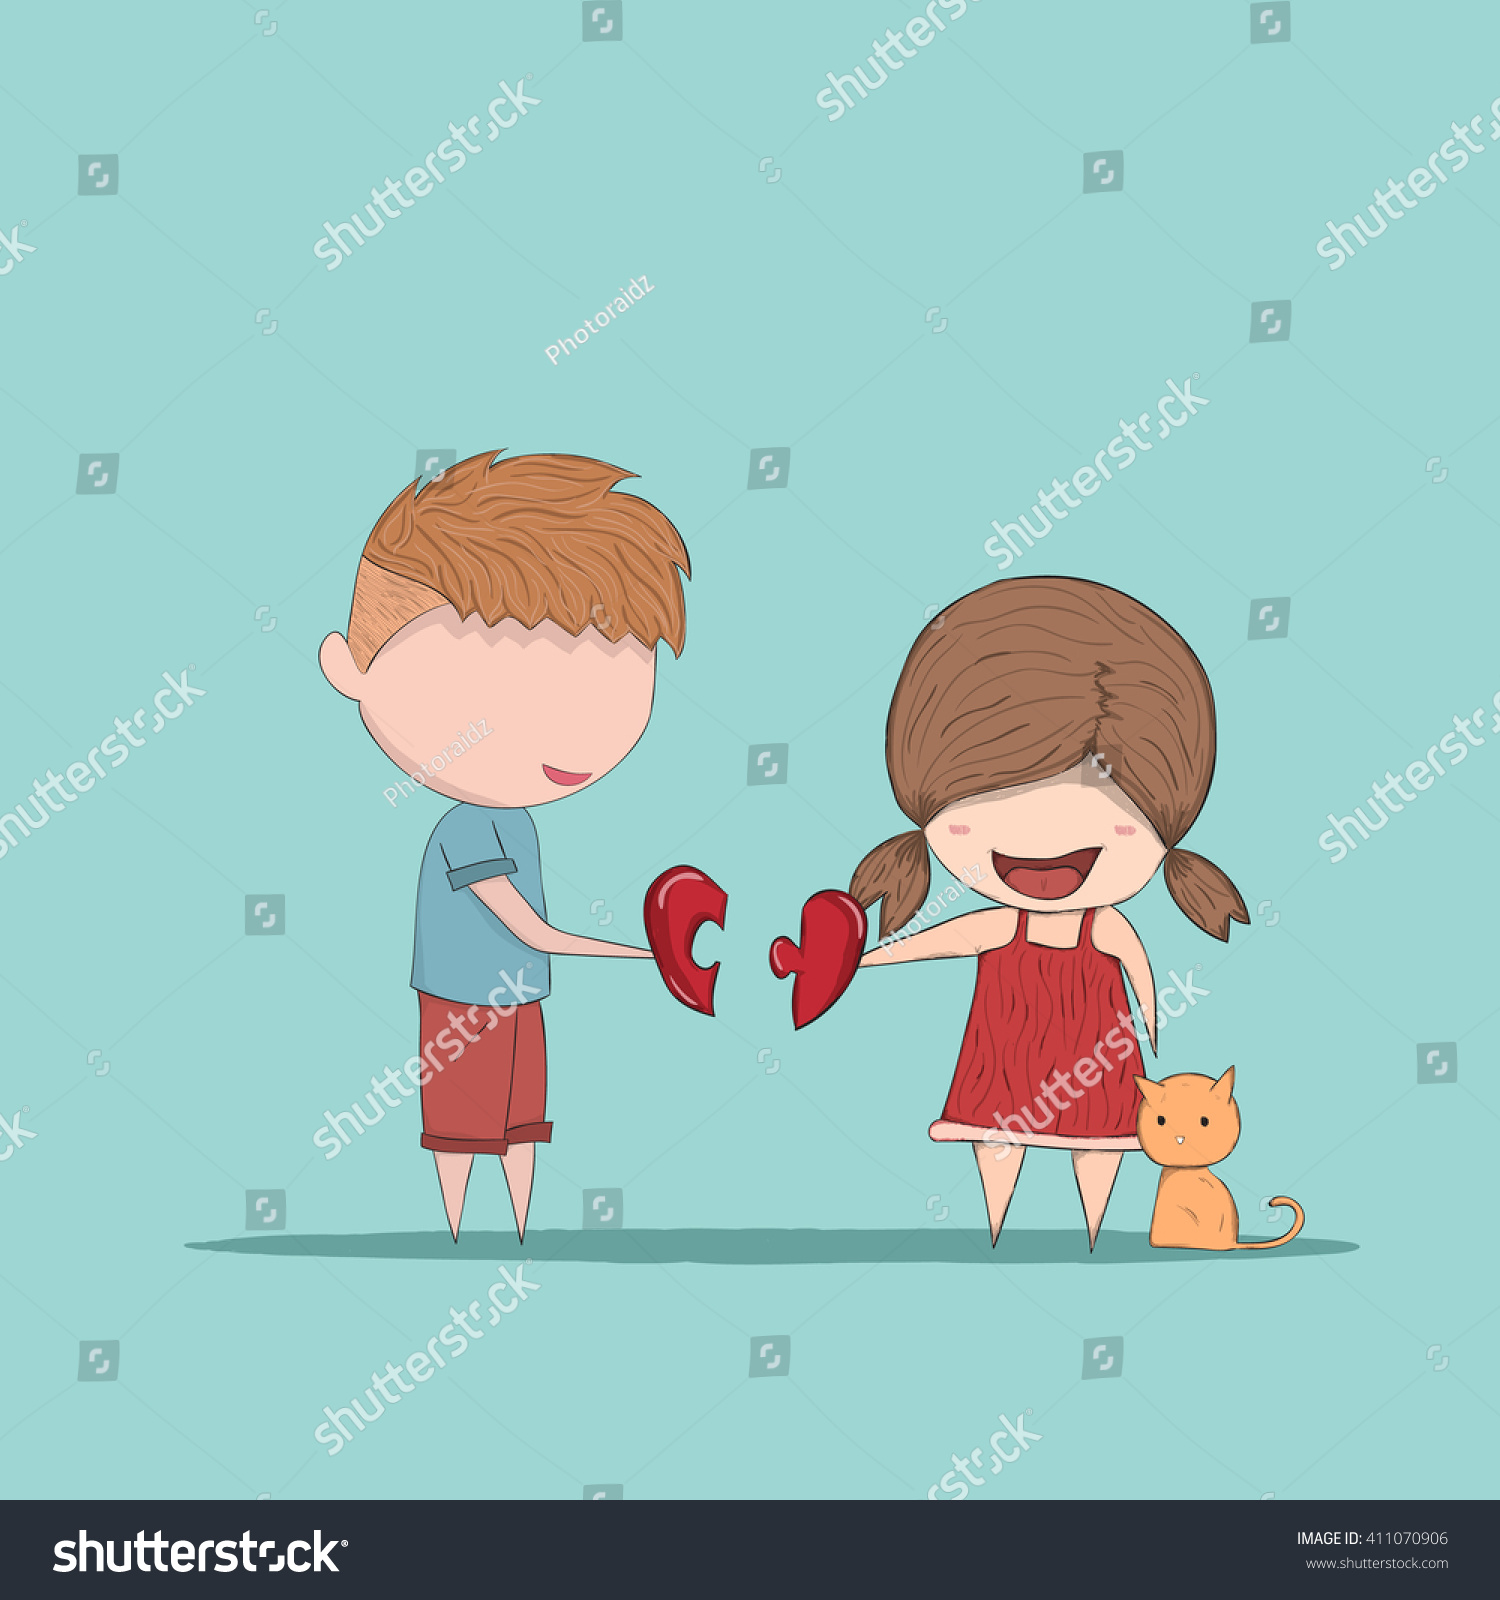 Cute cartoon boy and girl couple in love cute valentines day card drawing by